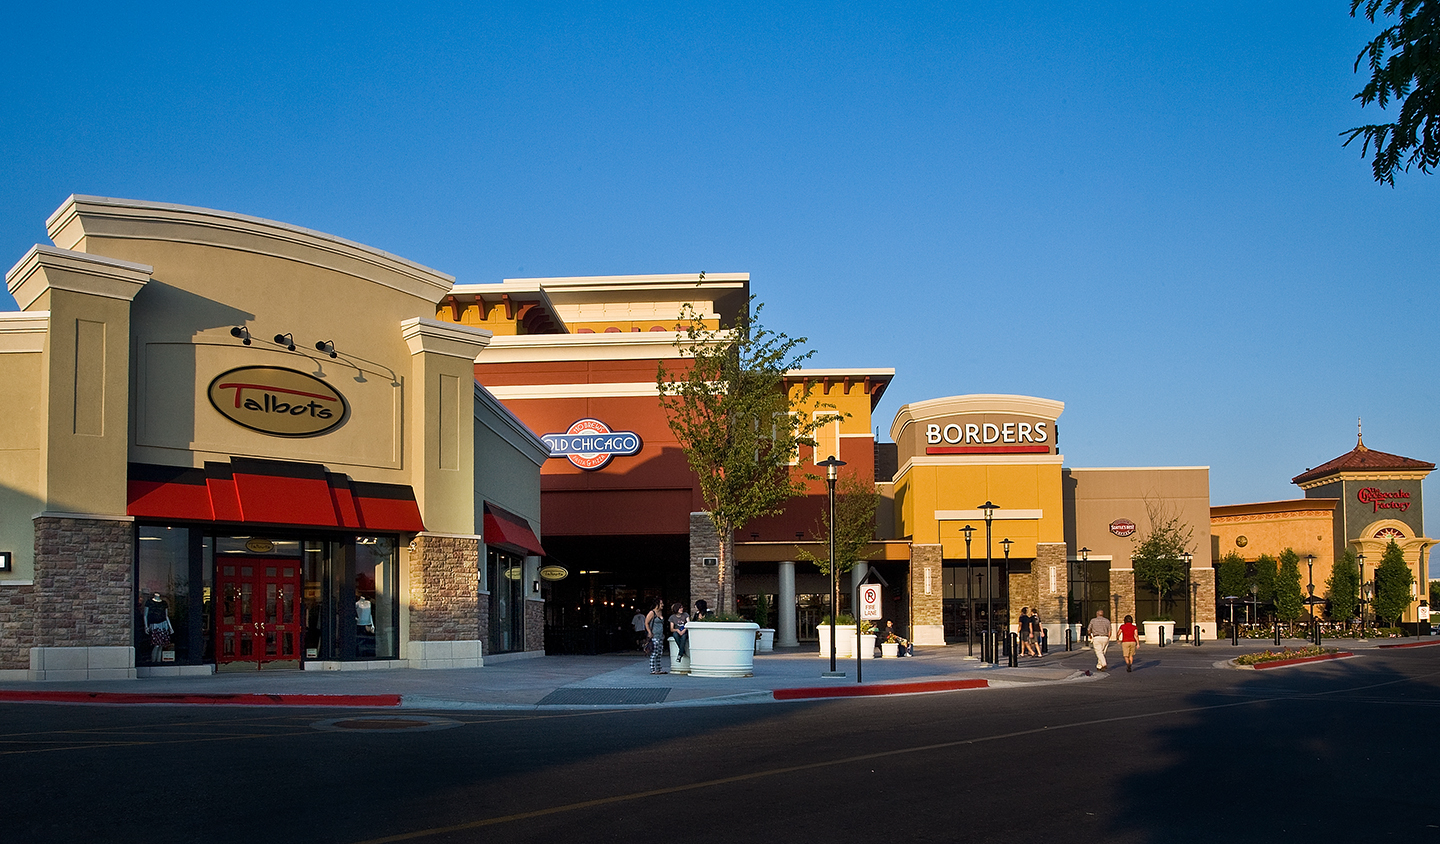 Best Boise Shopping: See reviews and photos of shops, malls & outlets in Boise, Idaho on TripAdvisor.